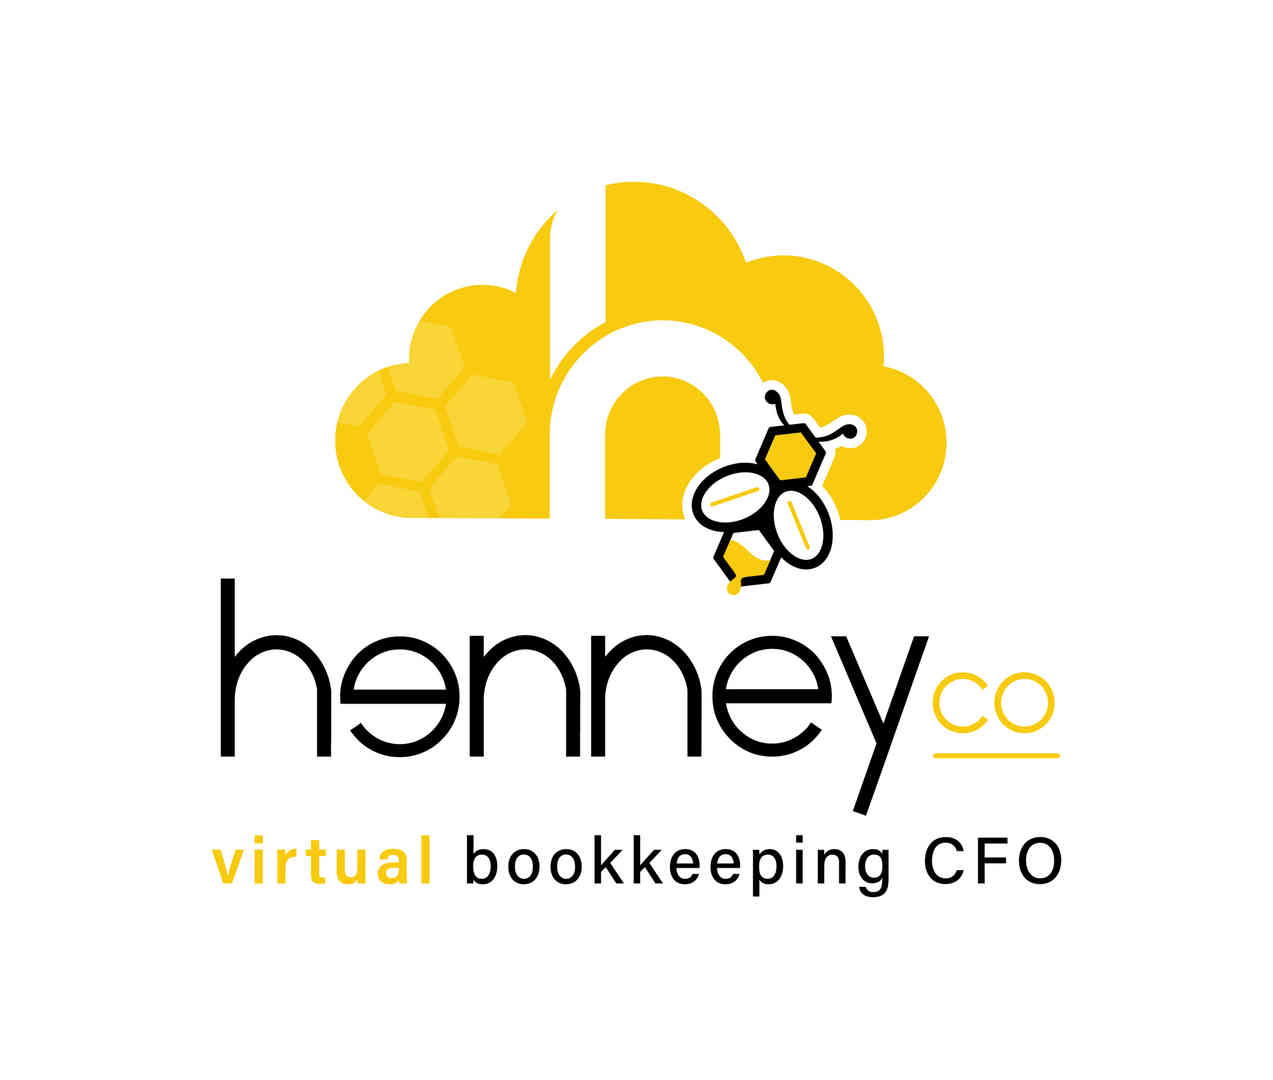 henney-co_virtual-bookkeeping-cfo-logo-r